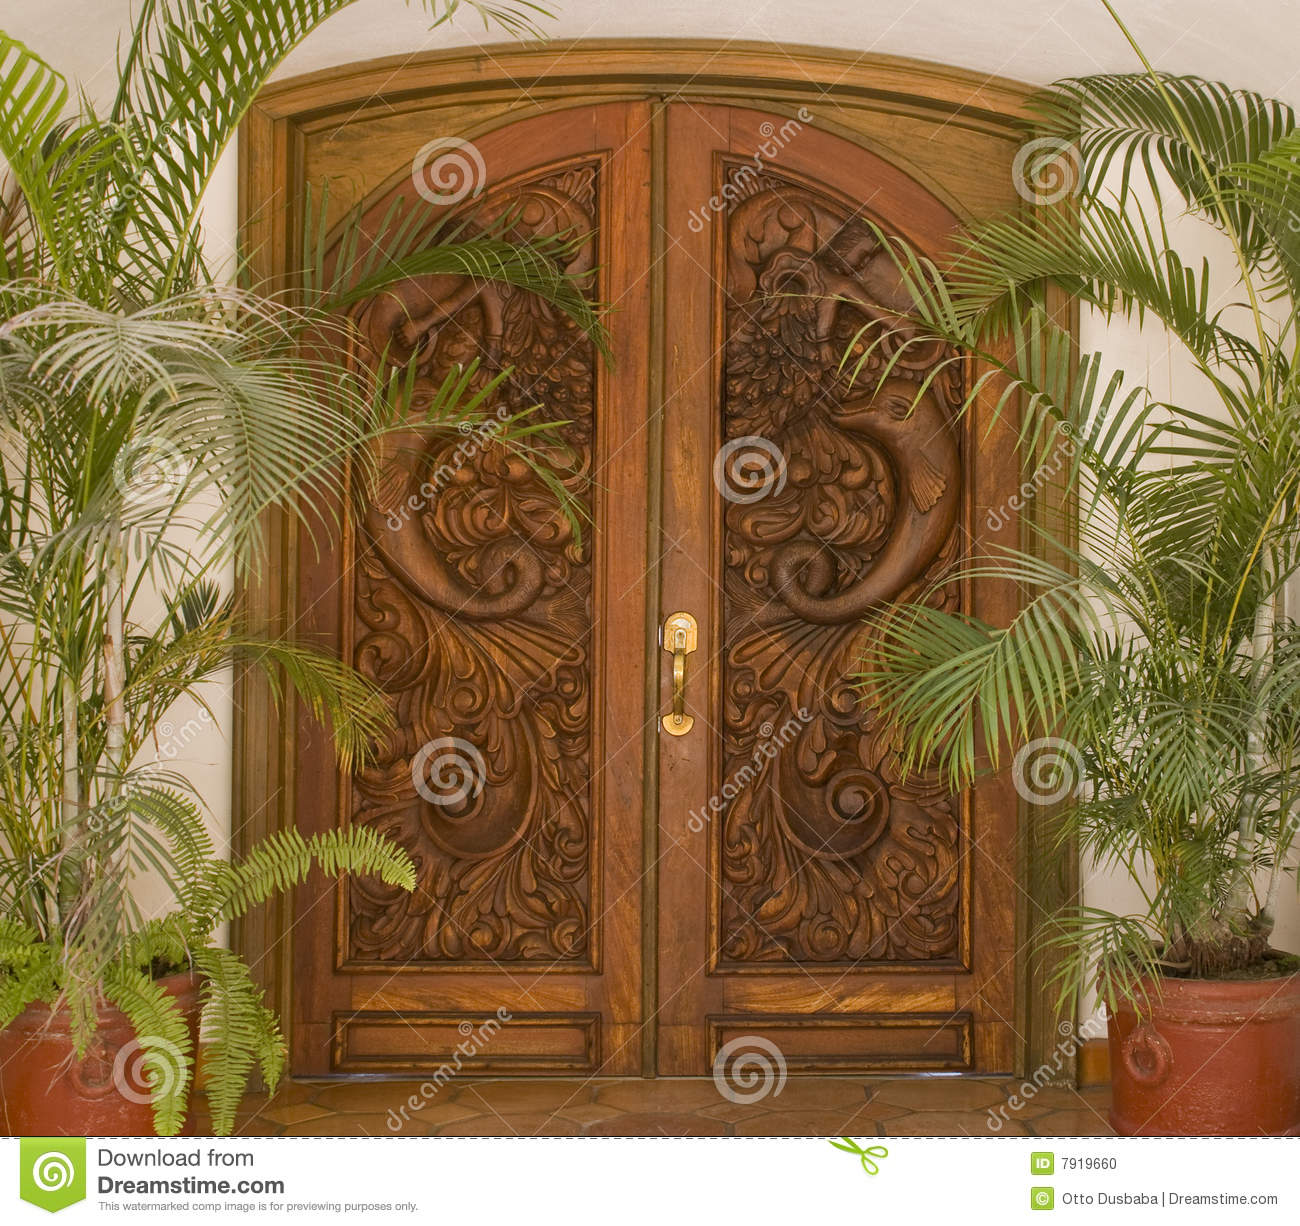 Wood Carving Doors Hd Images Of Carved Wooden Door Stock Photo Image Of Portal Made